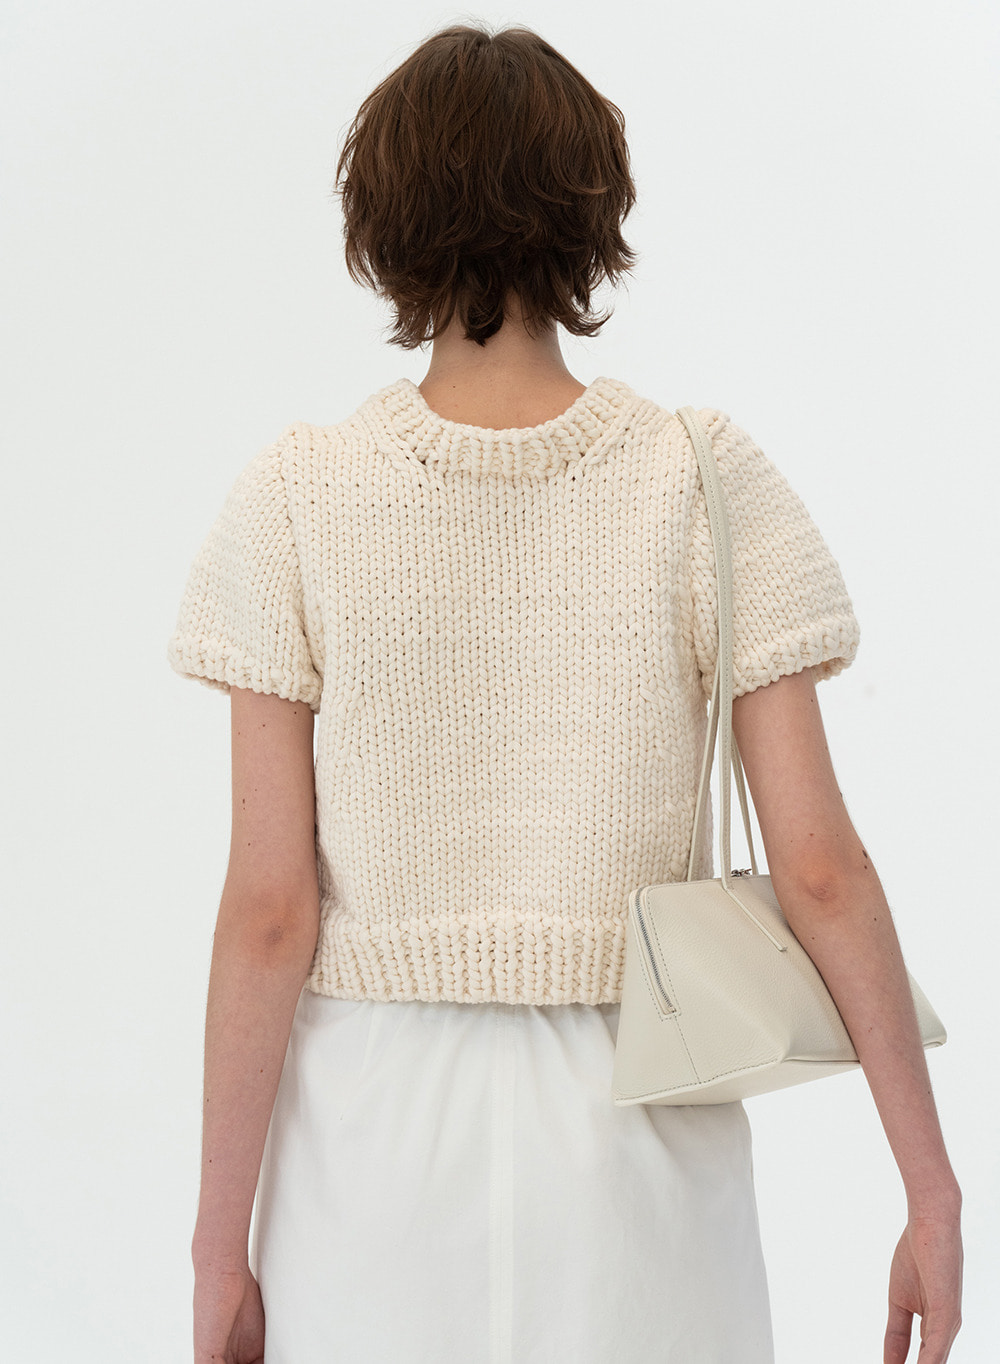 [ESSENTIAL] Hand-made Bulky Knitted Top Ivory